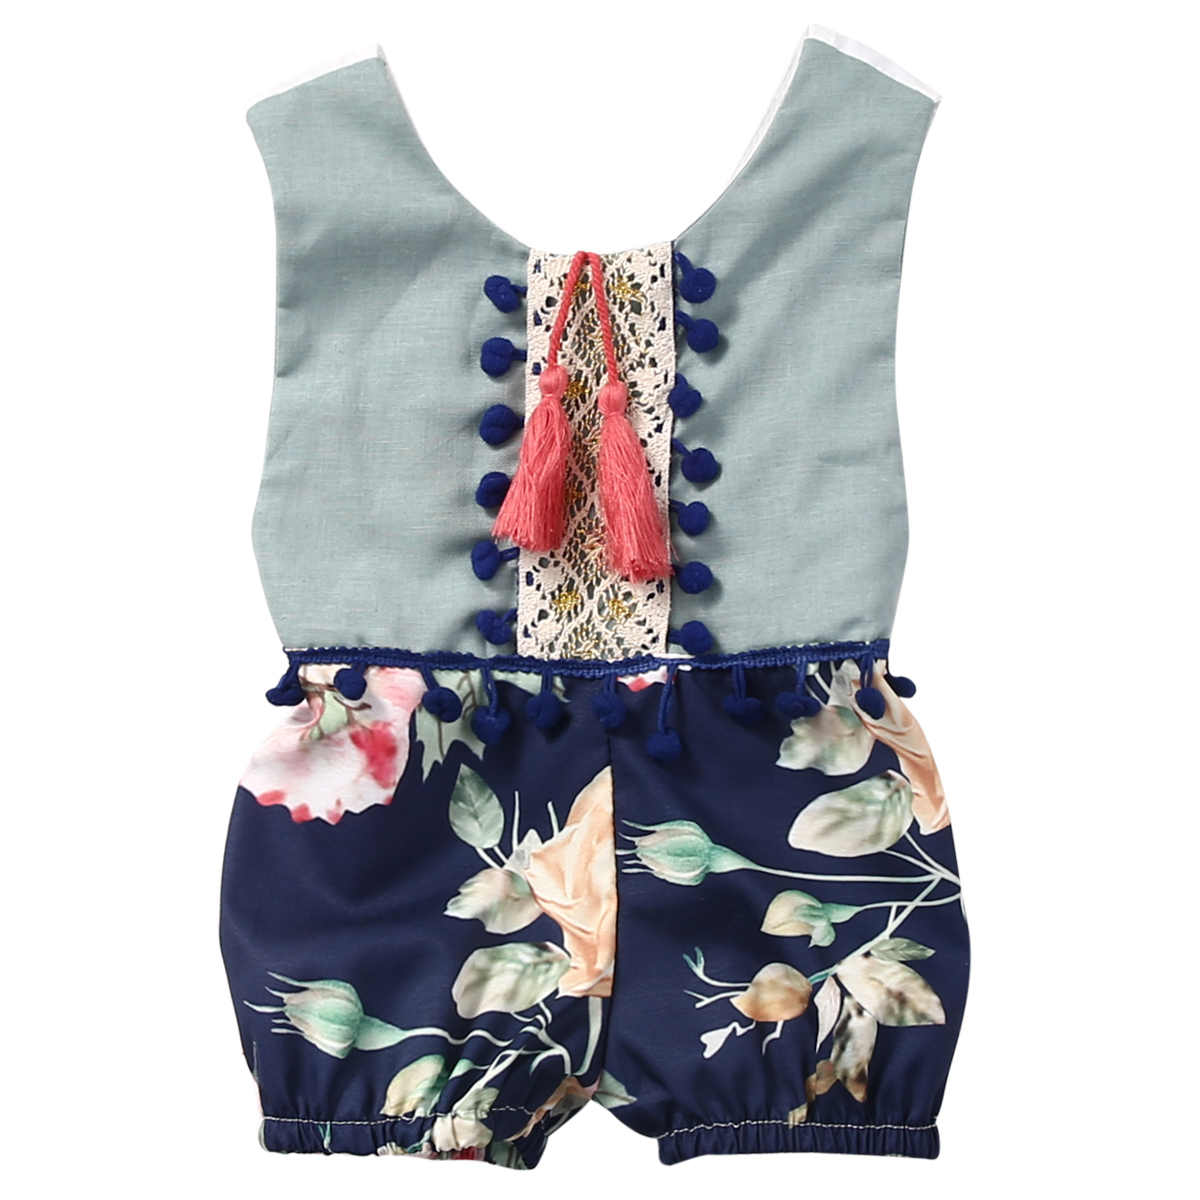 08083594657b 0-4Y Toddler Kids Girls Clothes Sleeveless Floral Romper Baby Girl Rompers  Playsuit One Pieces